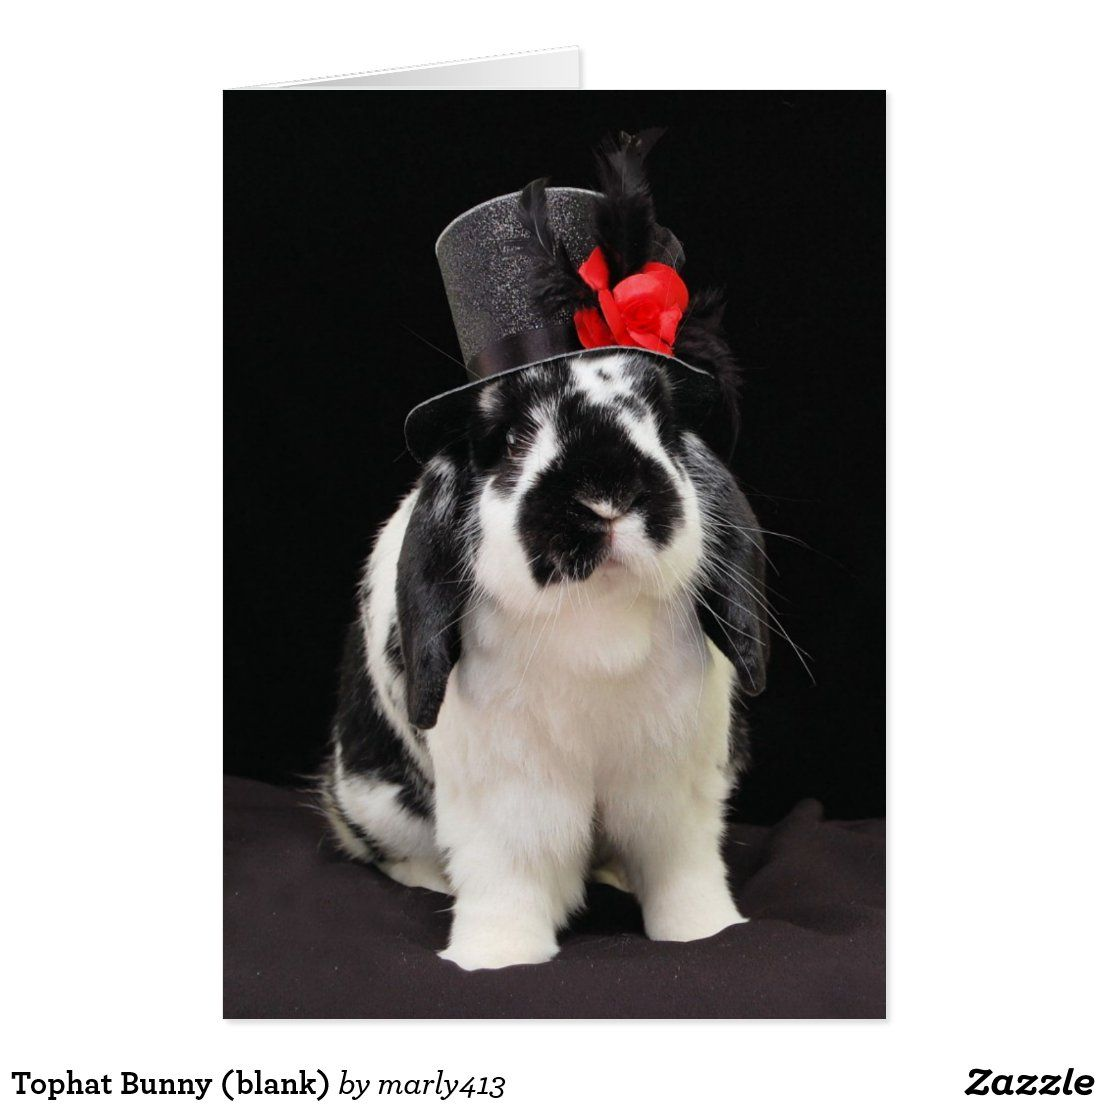 Tophat Bunny (blank)